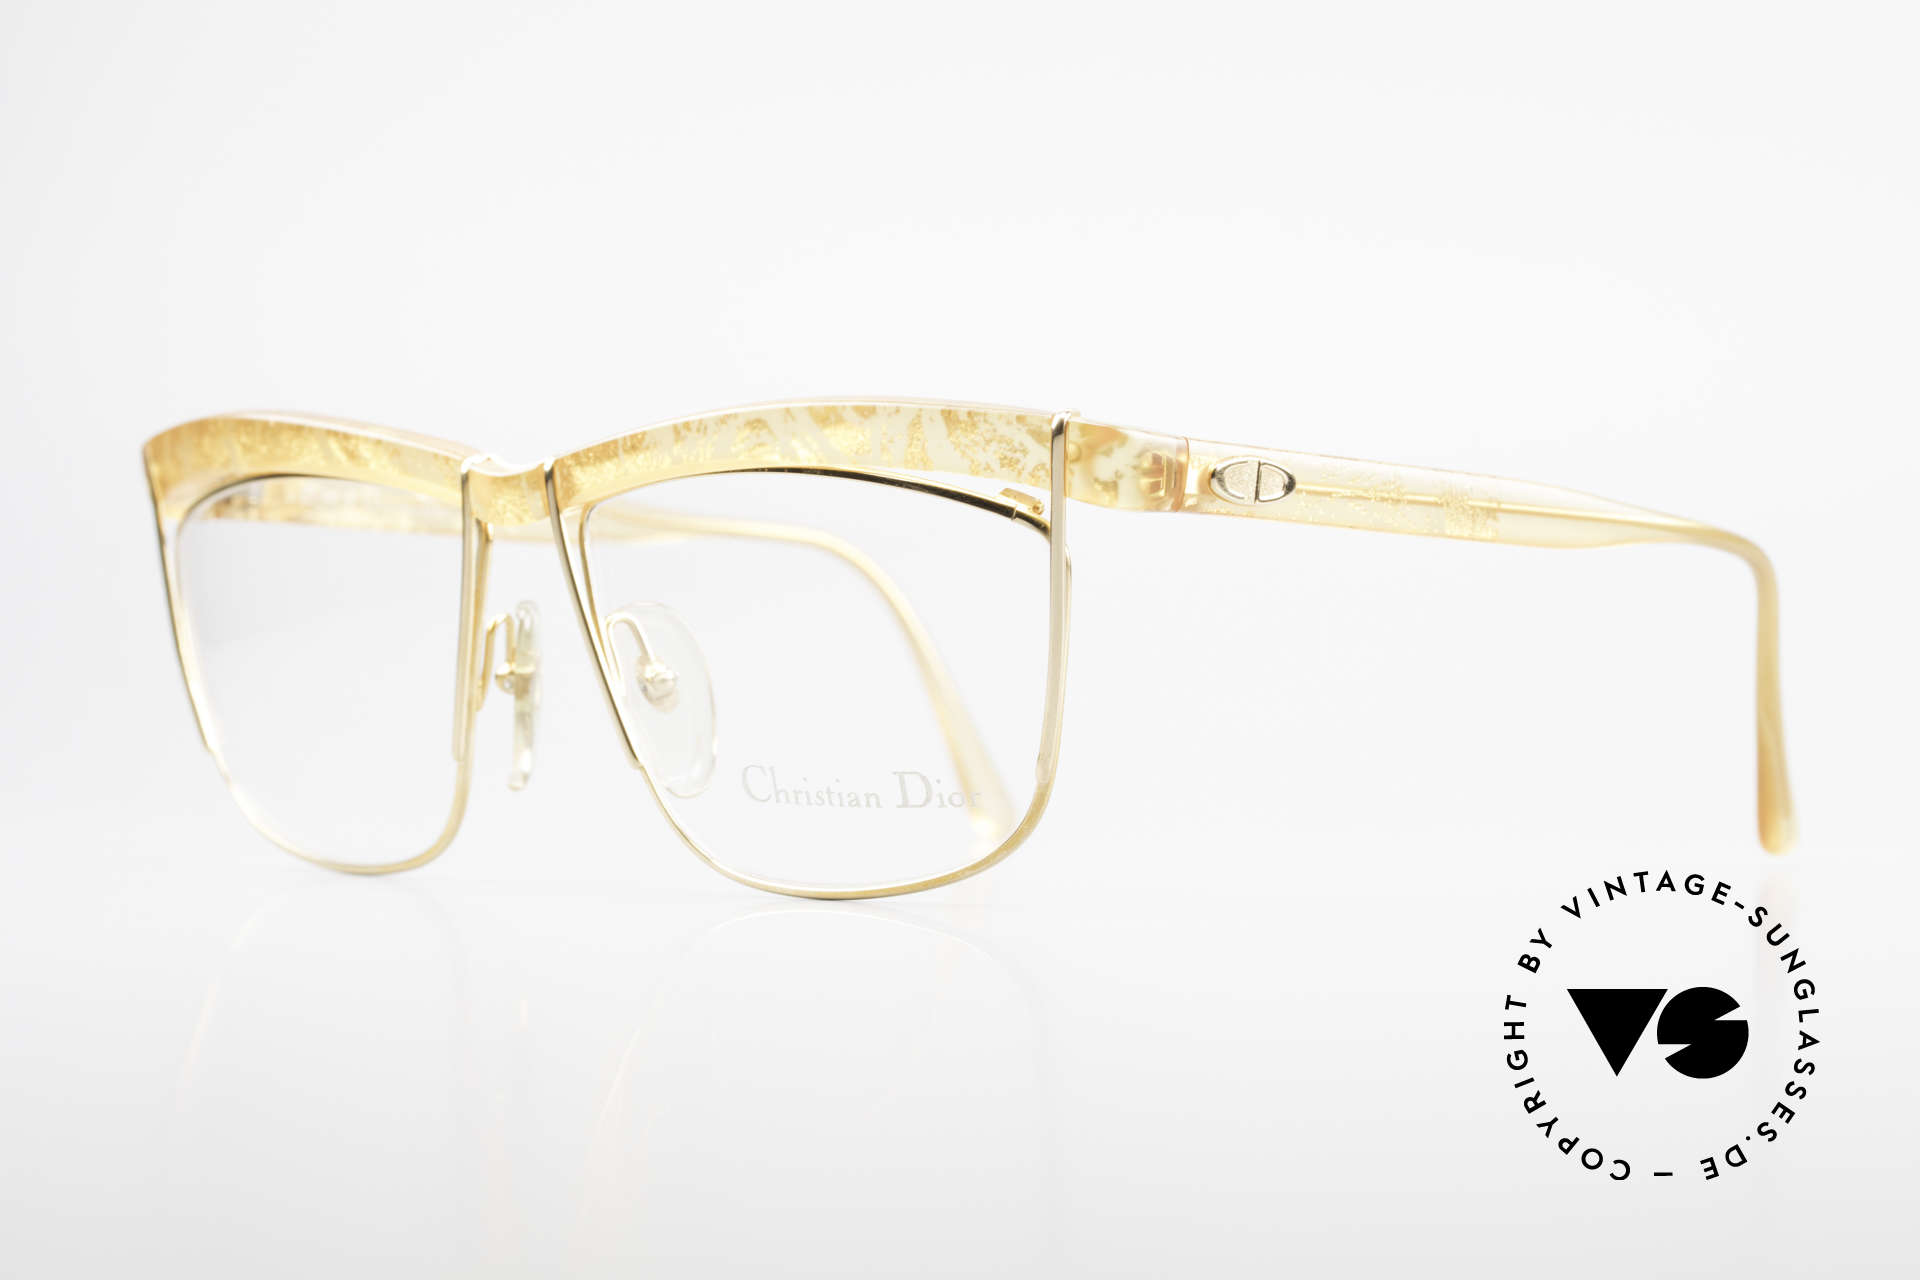 Christian Dior 2552 90's Designer Frame Ladies, brilliant combination of shape/pattern/materials, Made for Women